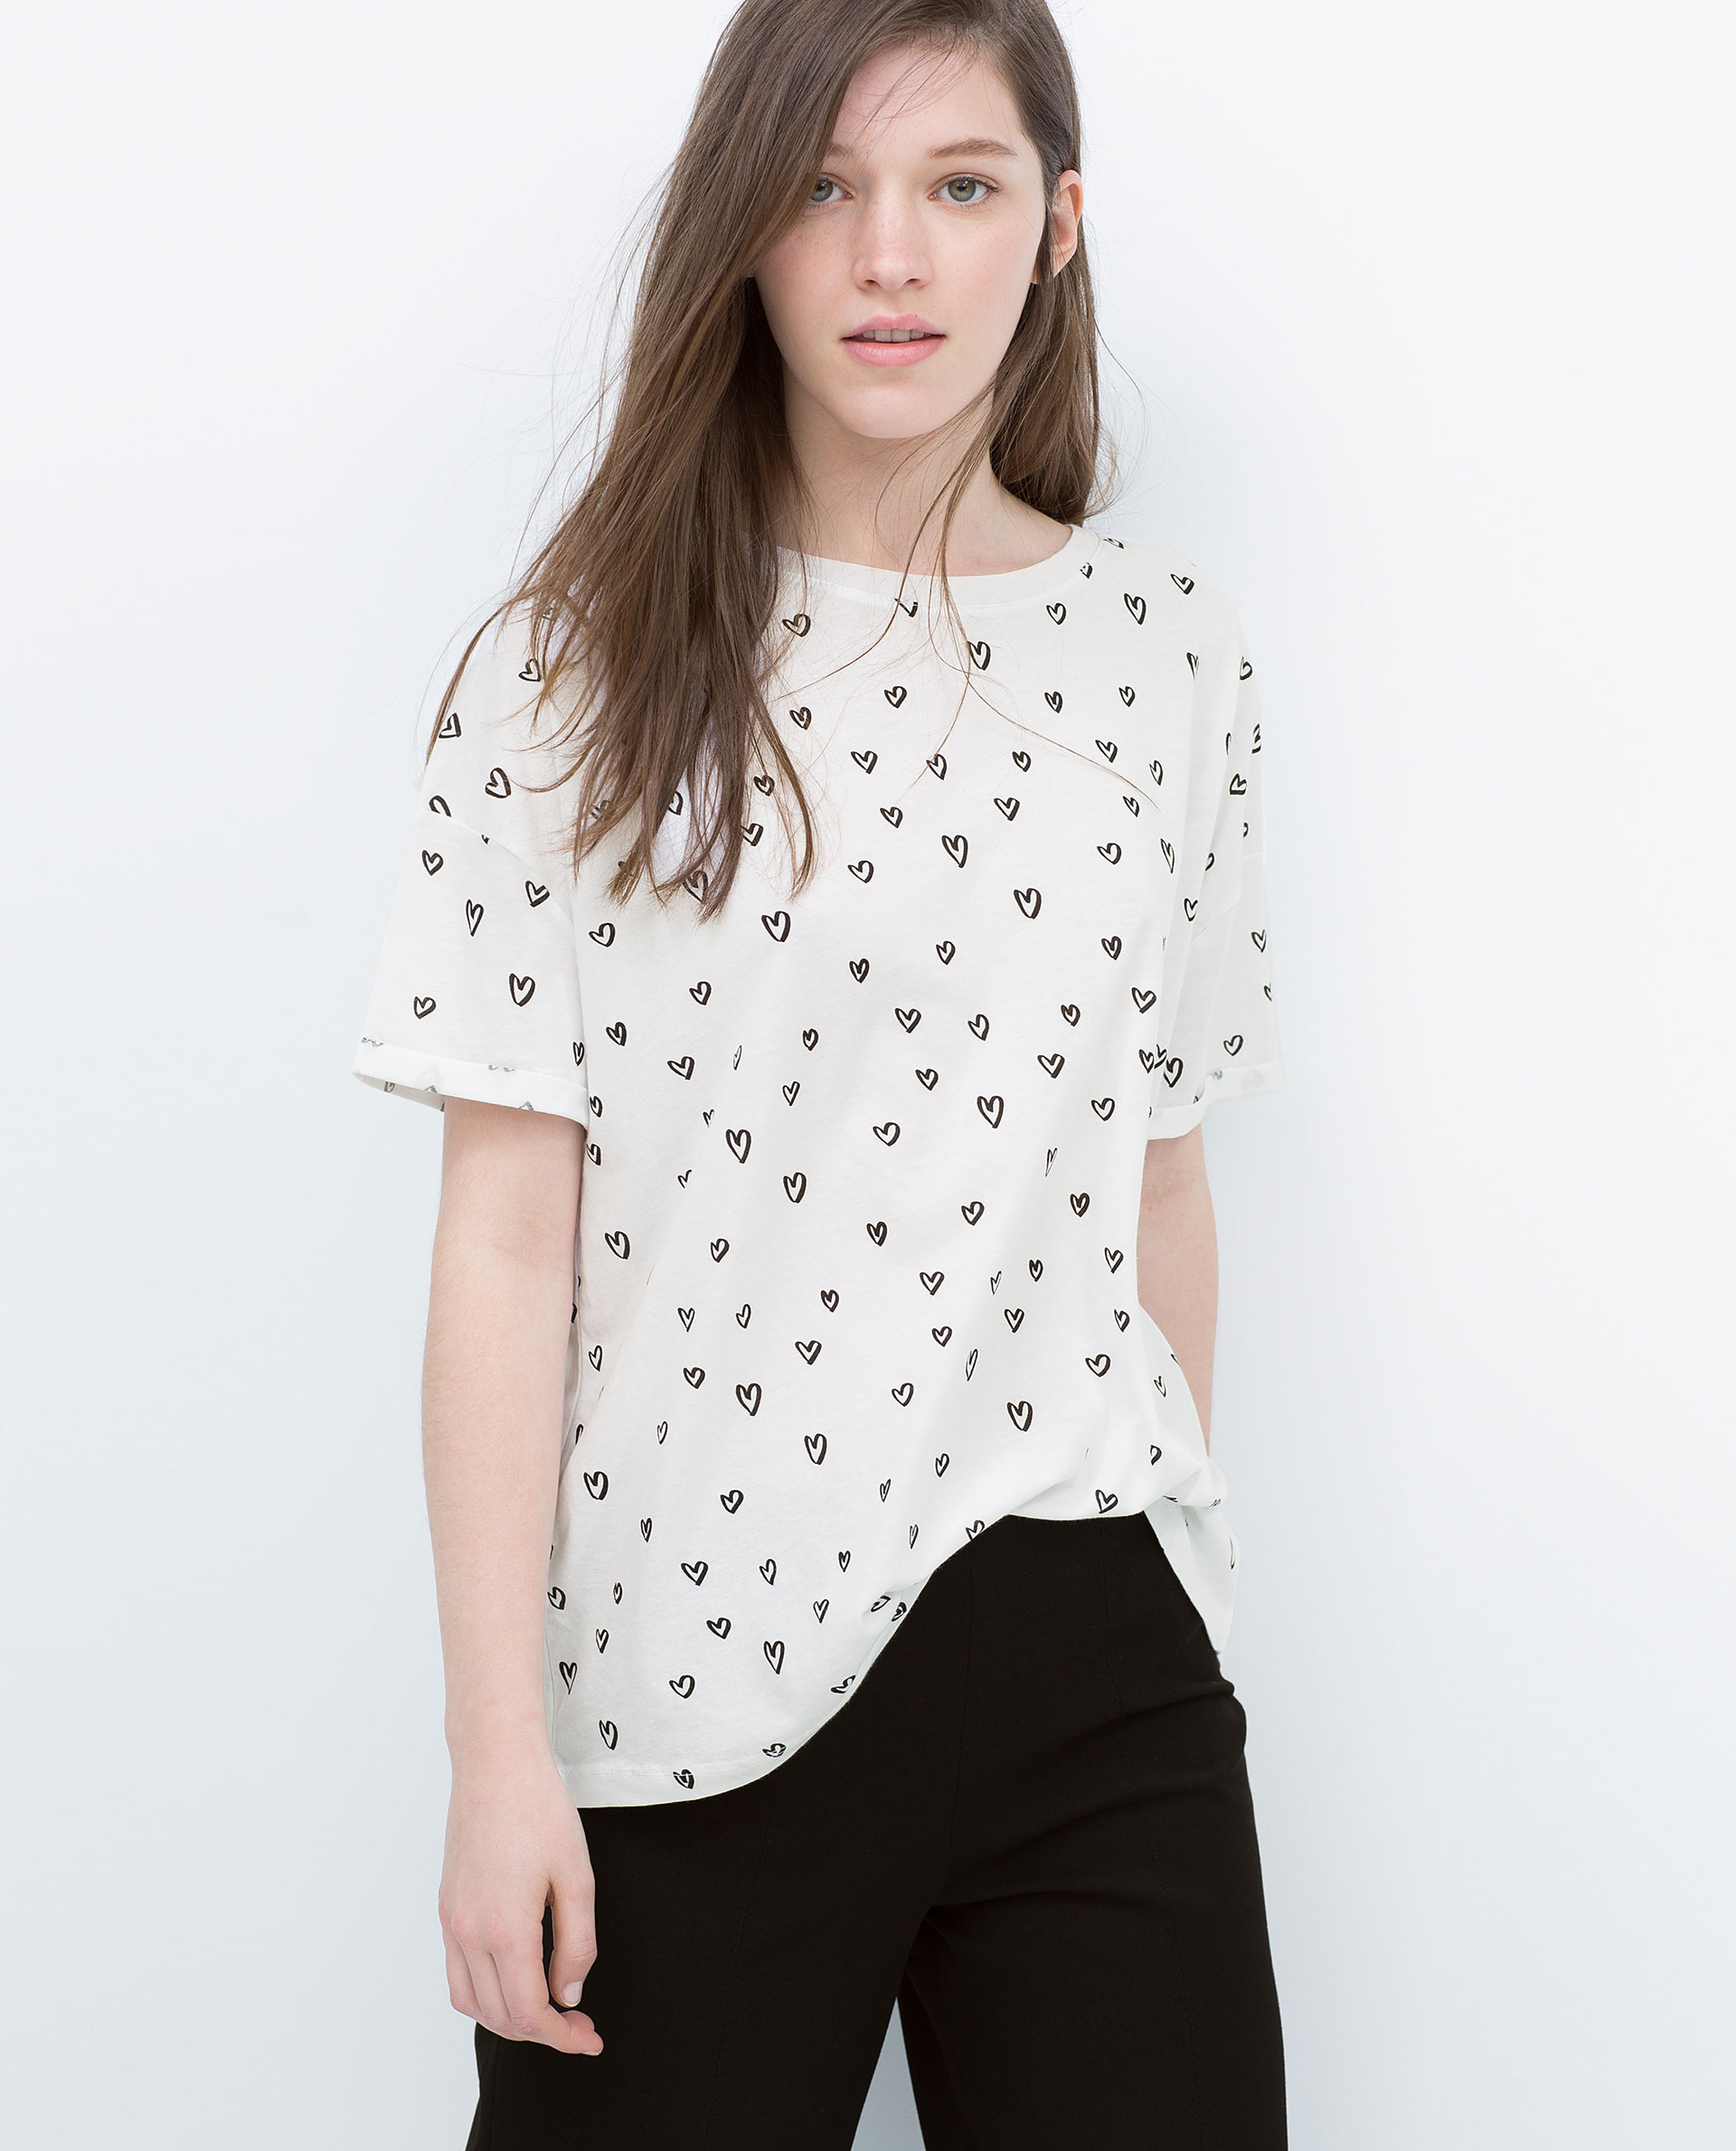 Trafaluc by Zara, better known by the brand's devotees as simply TRF, is a member of the Zara family. As part of Inditex, one of the largest fashion companies in the world, Zara has been making waves and moving mountains since it was founded in